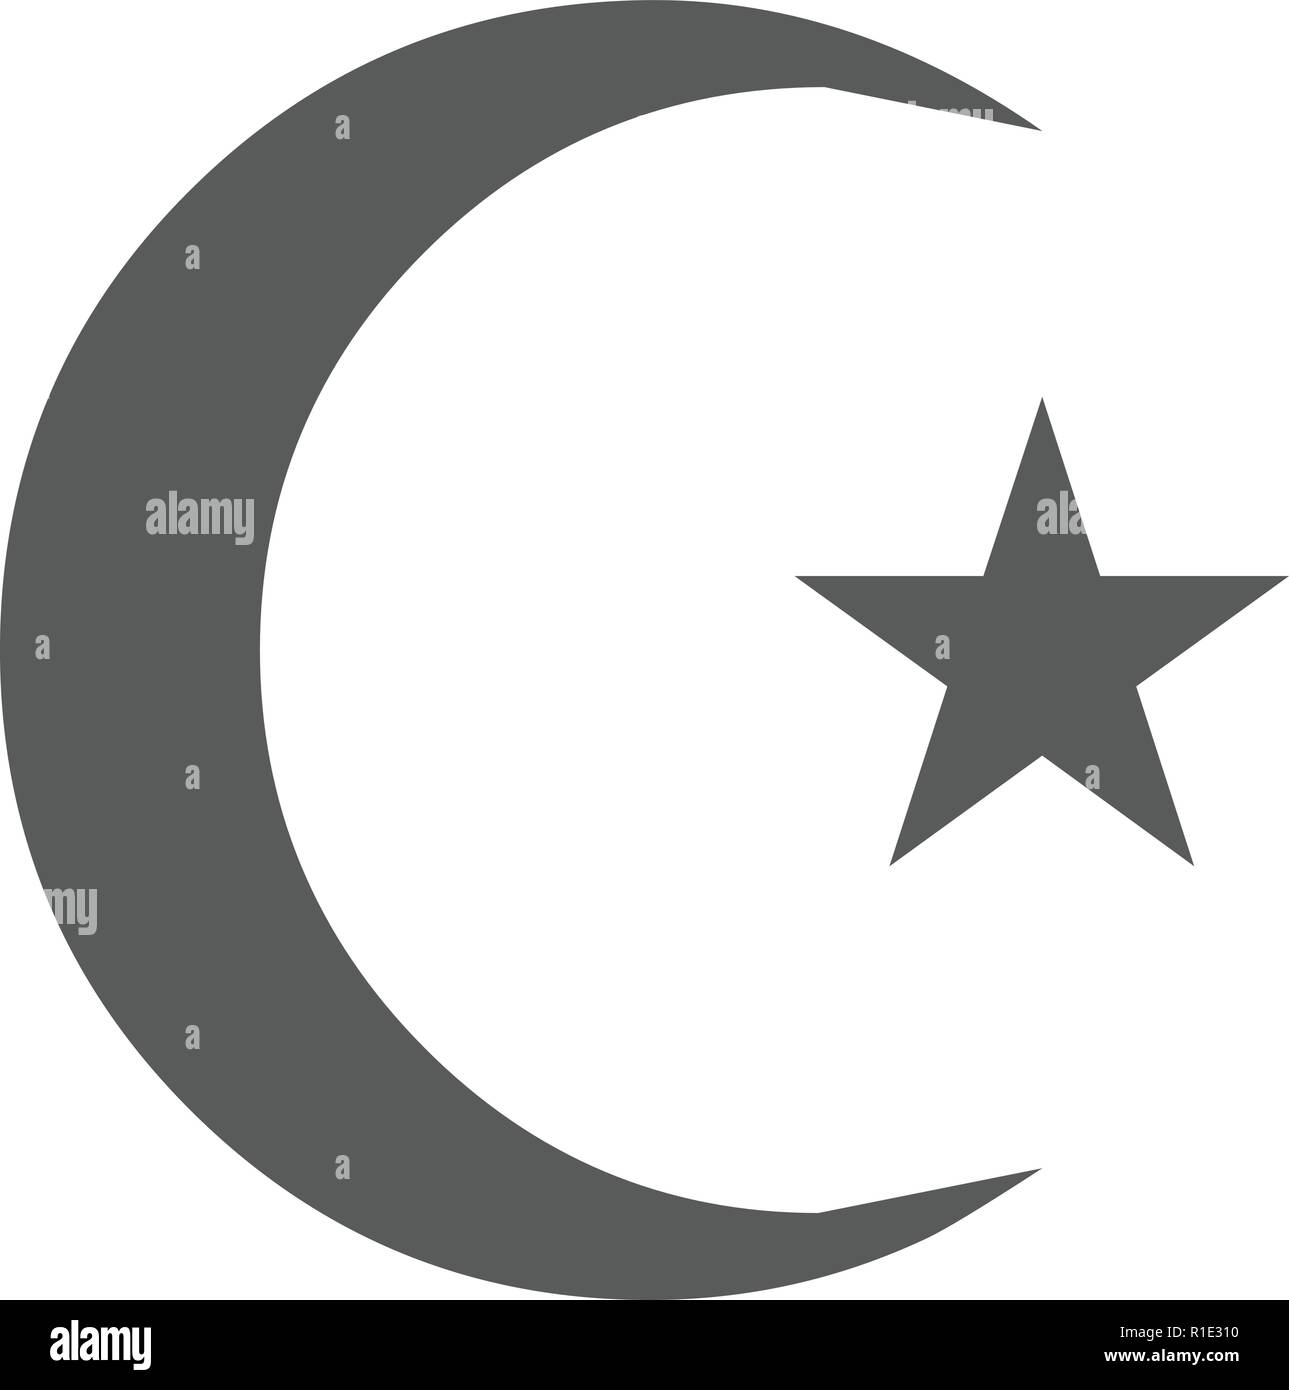 islamic crescent moon icon vector simple illustration of islamic crescent moon icon isolated on white background stock vector image art alamy https www alamy com islamic crescent moon icon vector simple illustration of islamic crescent moon icon isolated on white background image224659148 html